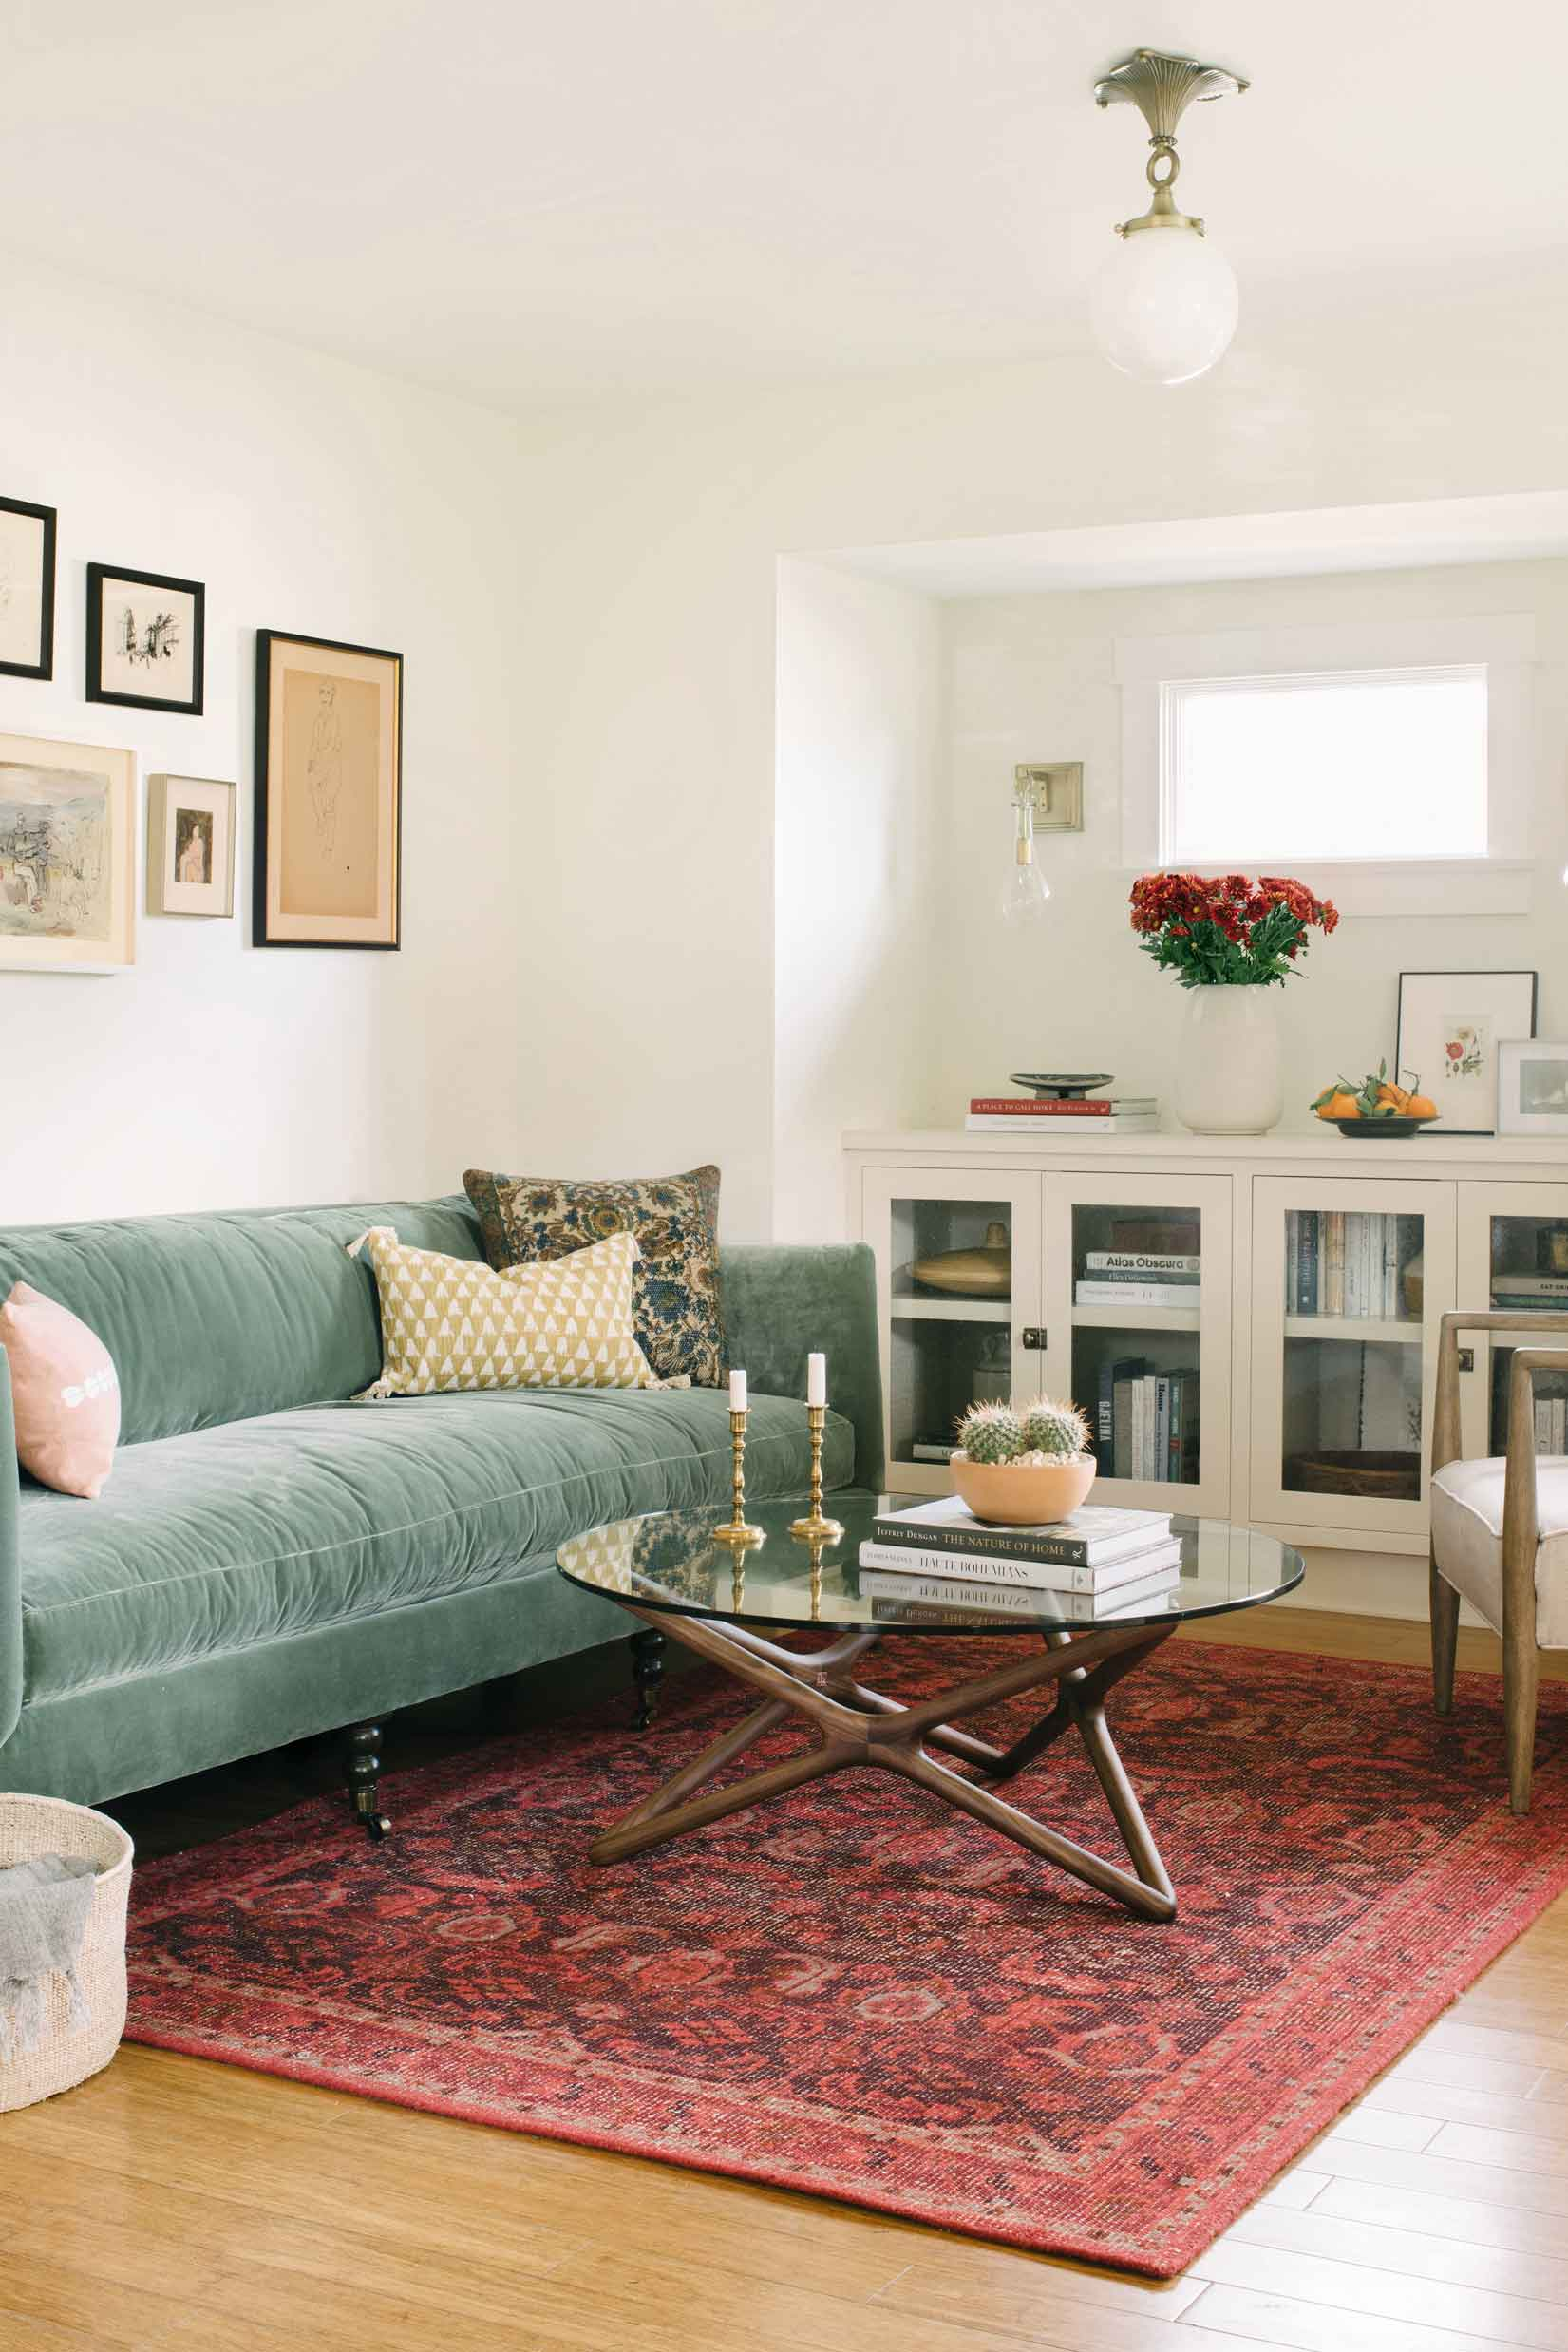 Actress Floriana Lima's home gets a jewel toned update